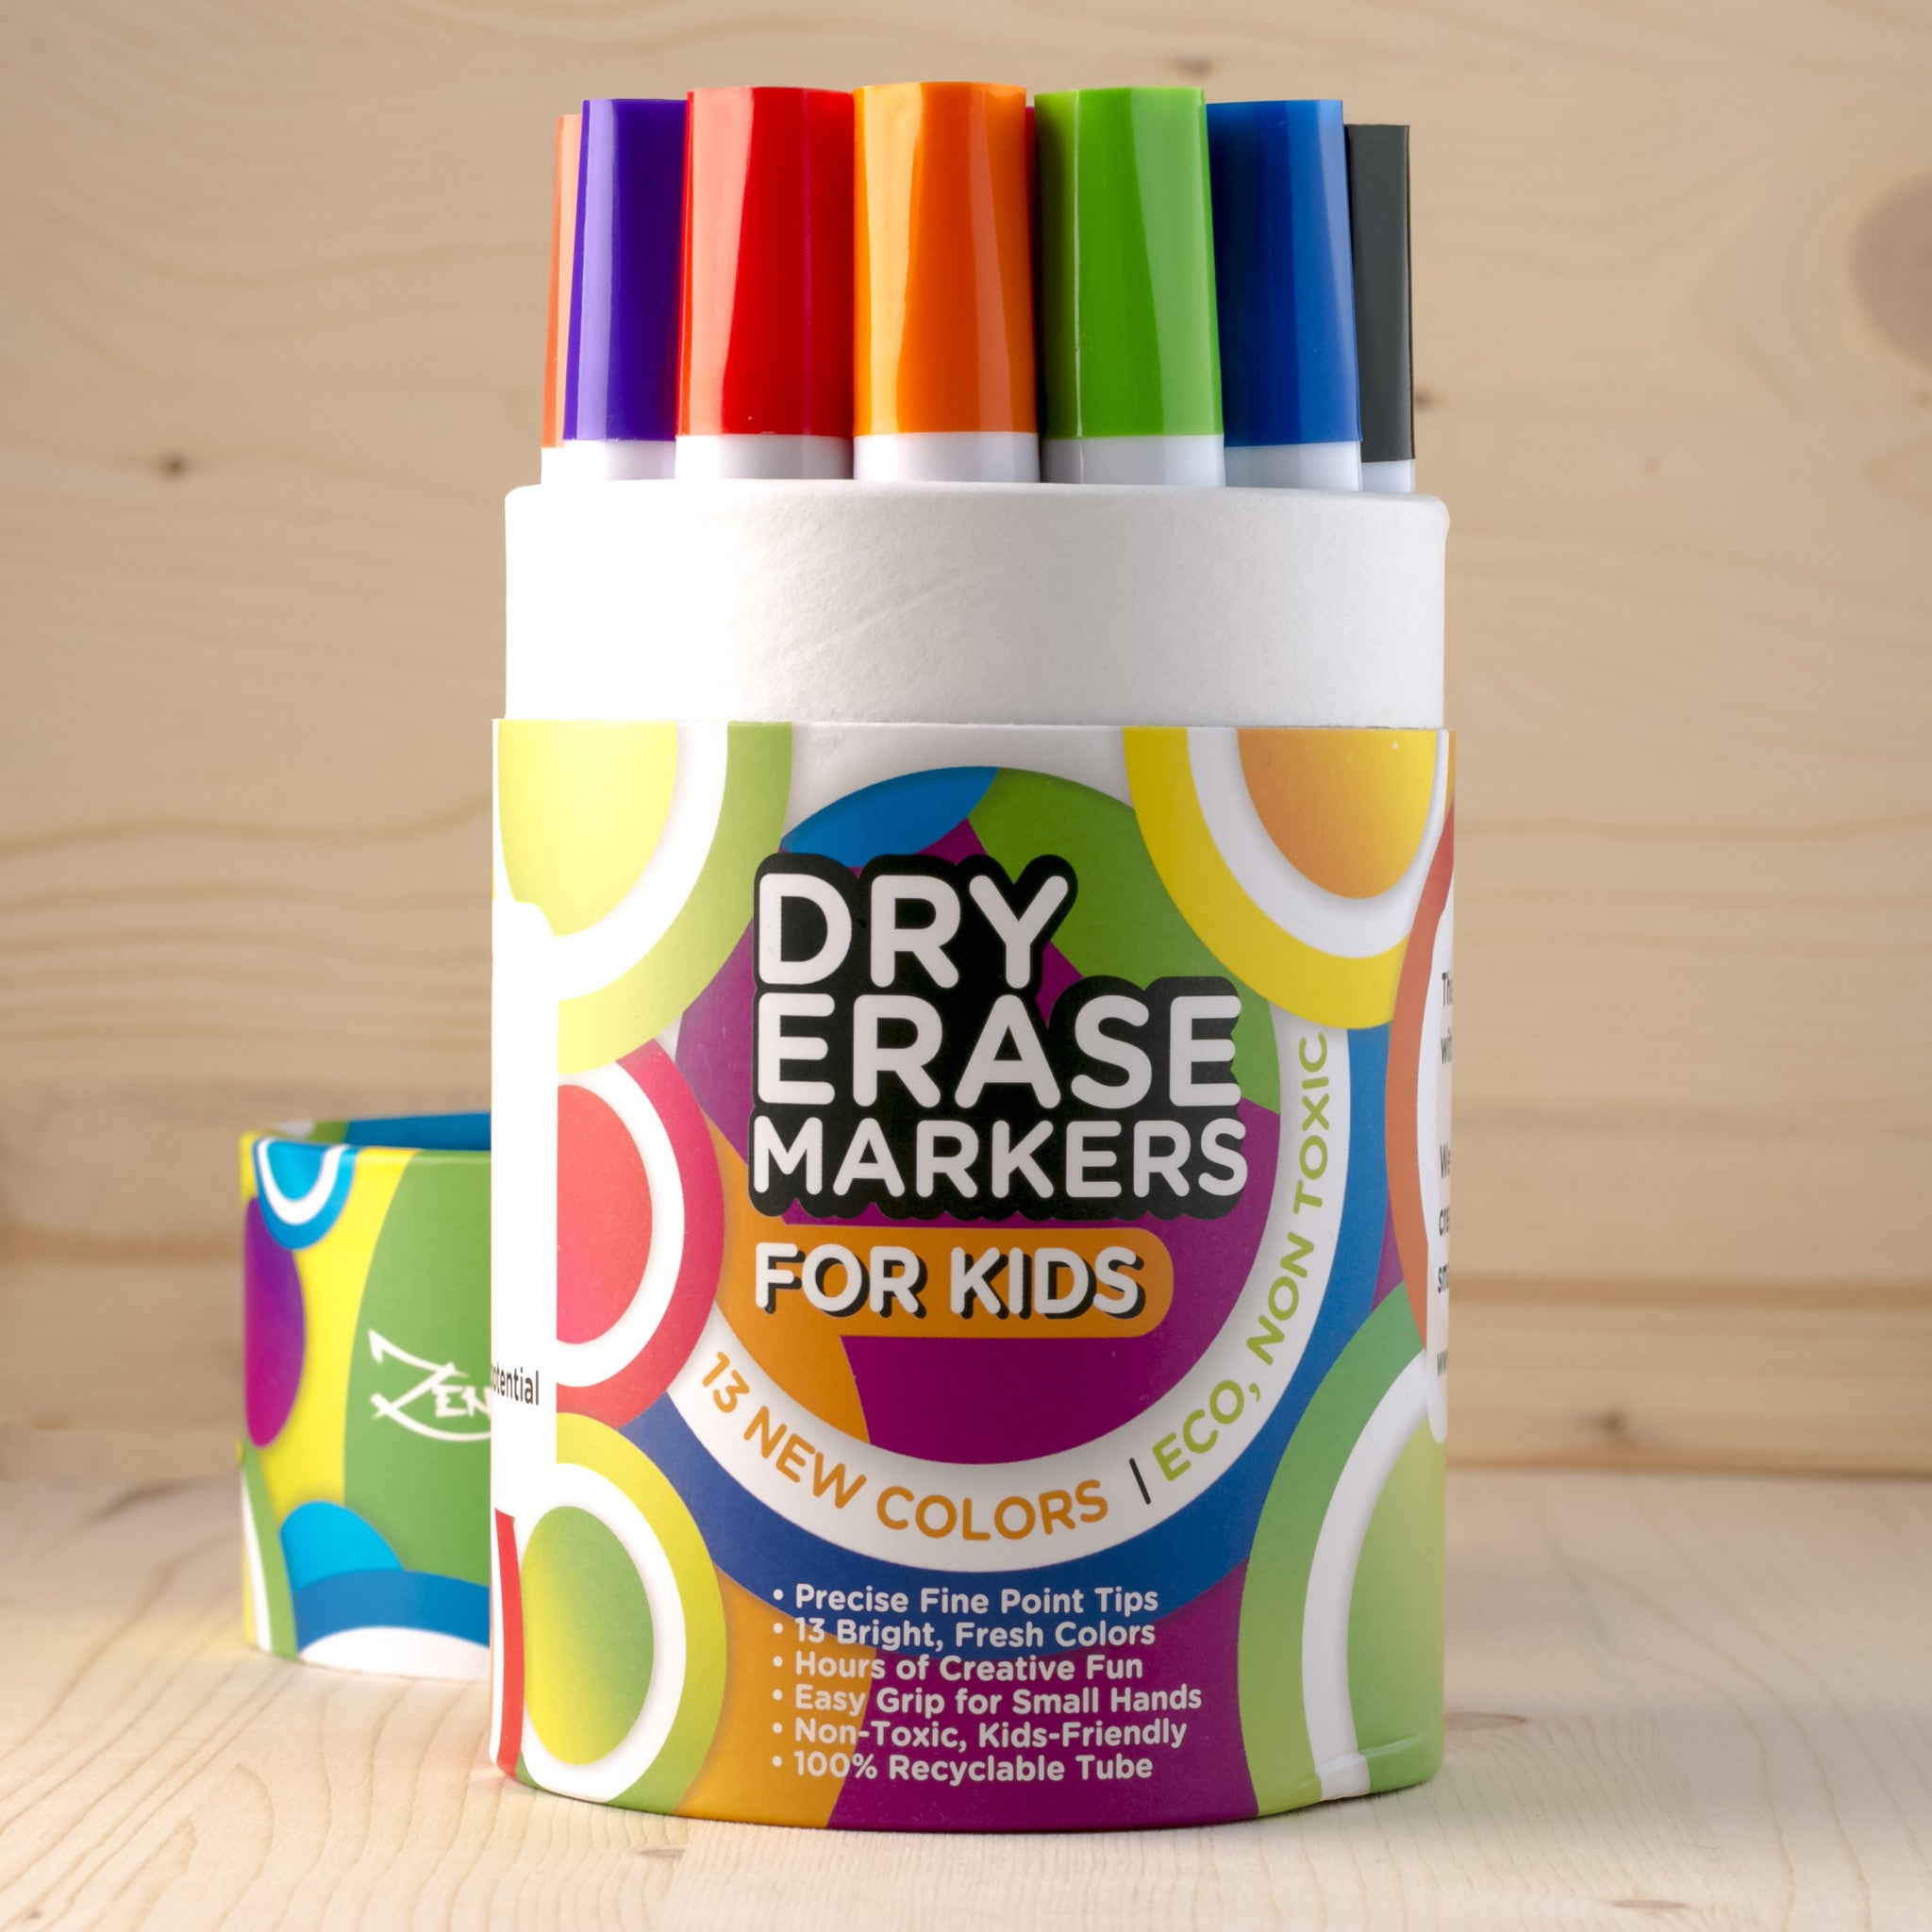 Children's whiteboard marker pens